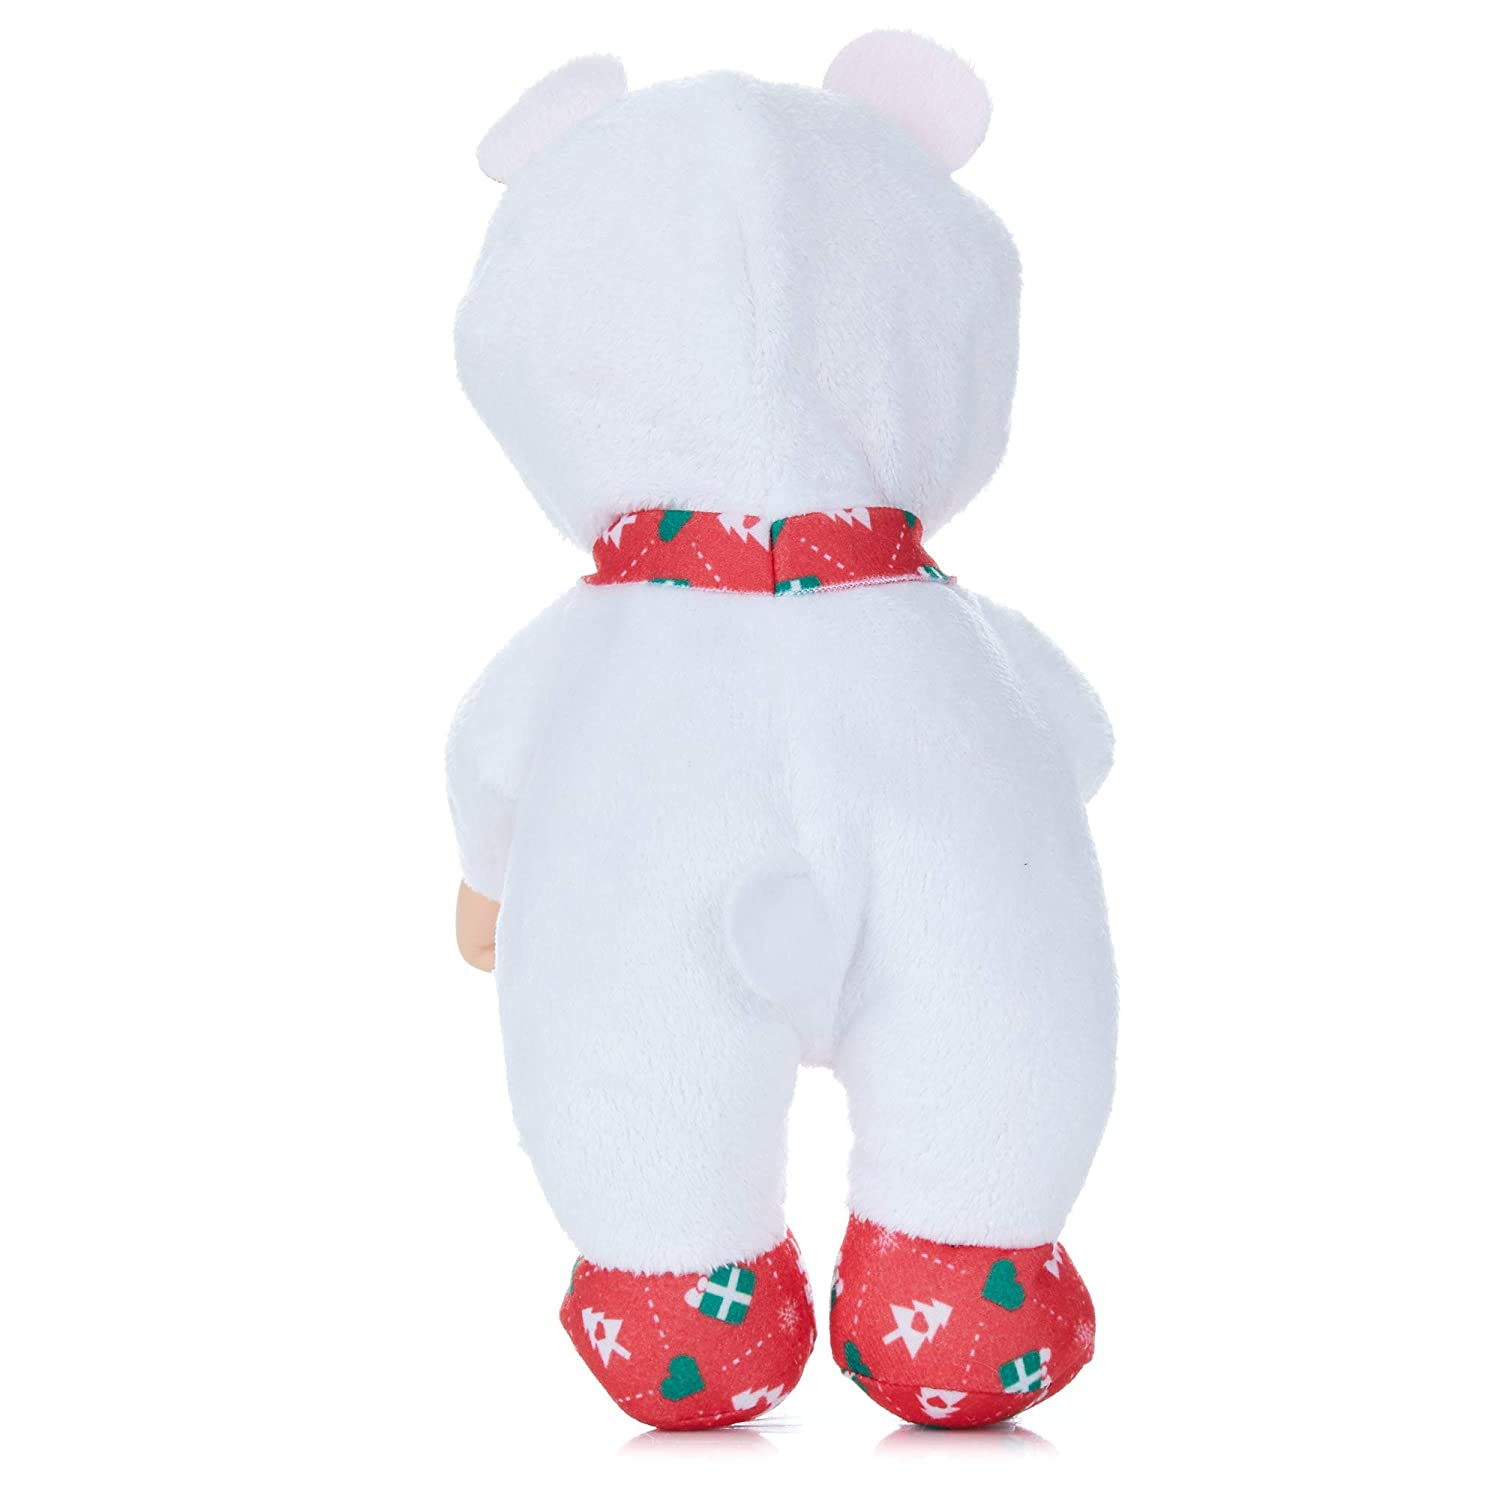 Cabbage Patch Kids Cuties Snowflake Polar Bear 9 Inch Soft Body Baby Doll Holiday Helper Collection